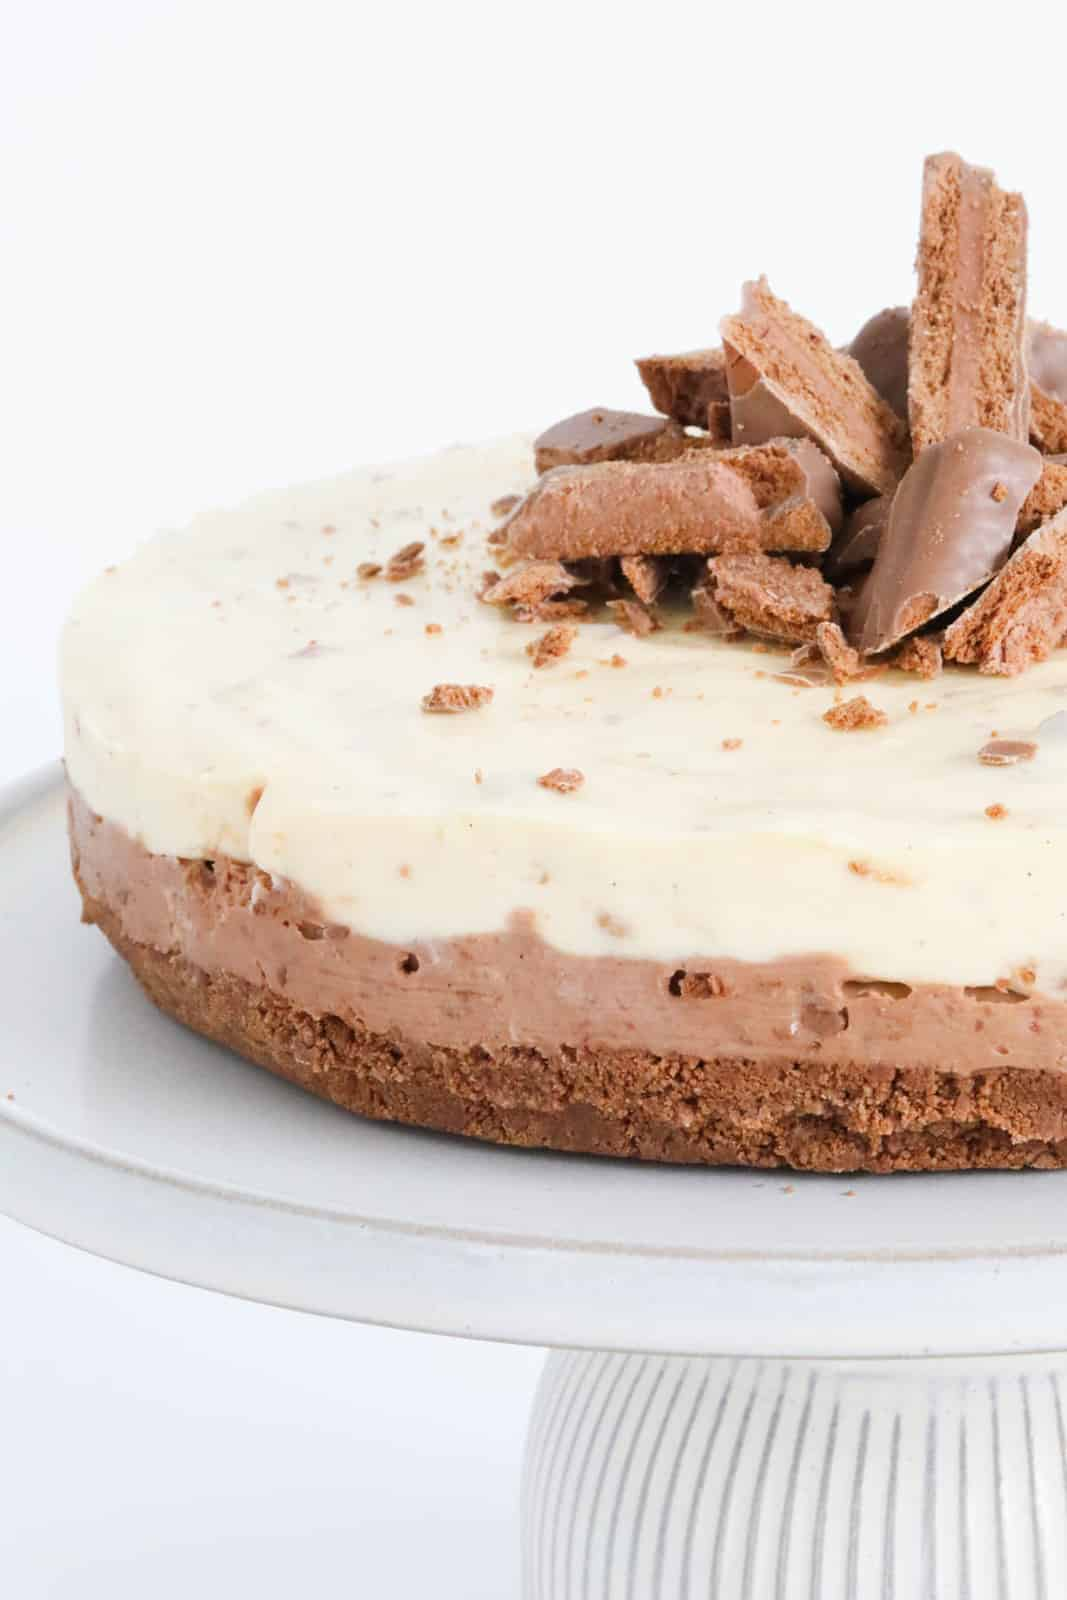 A close up view of a double layered cheesecake with chunks of chocolate biscuits on top.